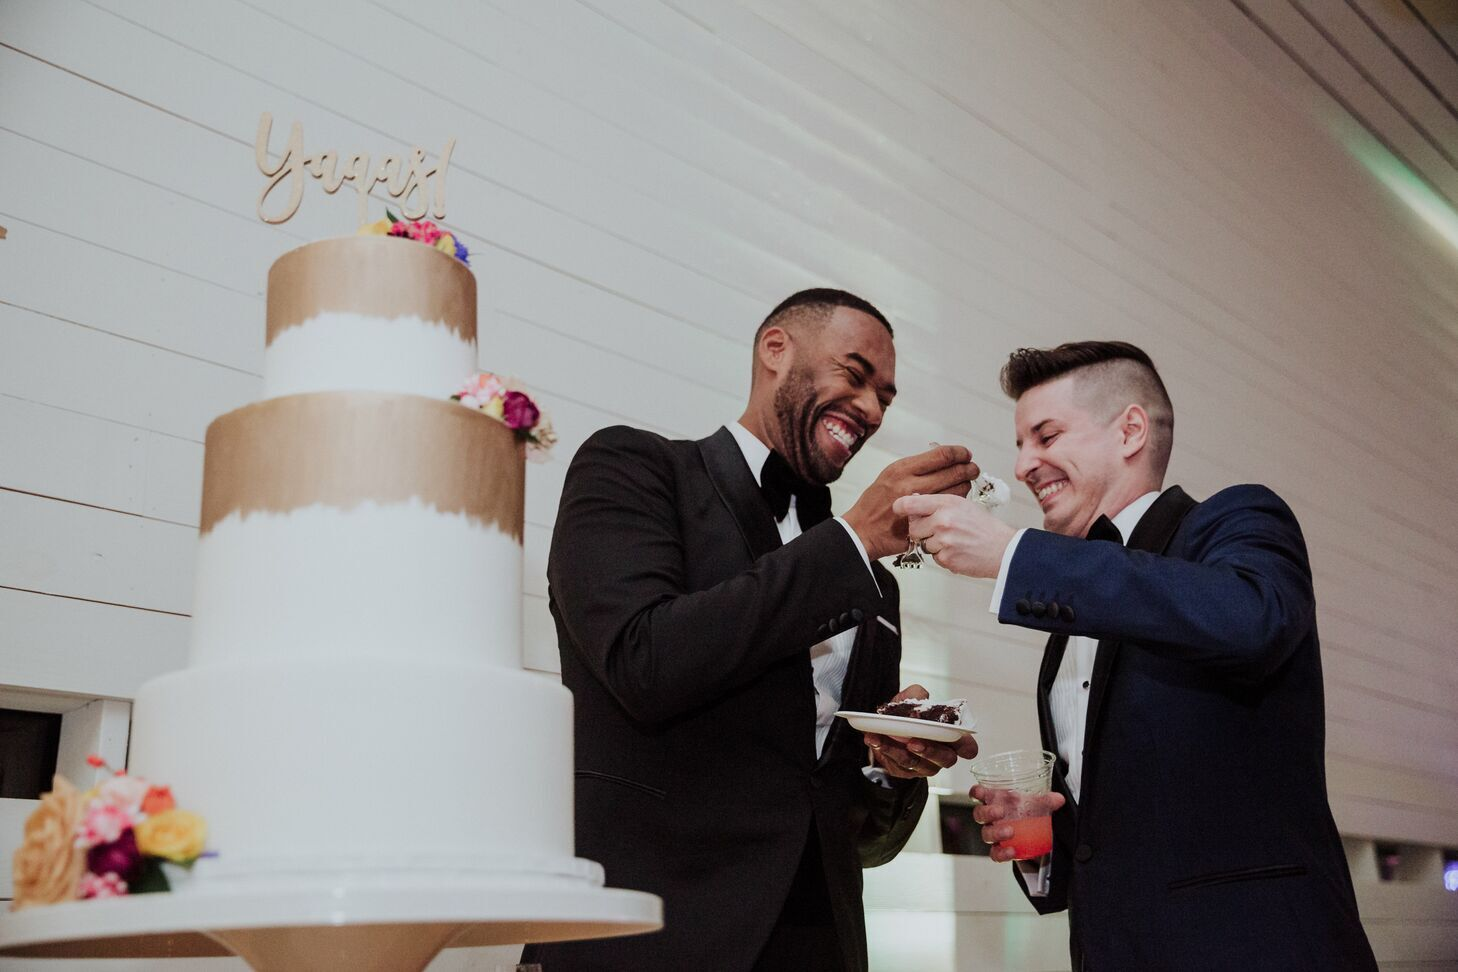 7 Designer Wedding Cake Ideas That Are Perfect for 2021